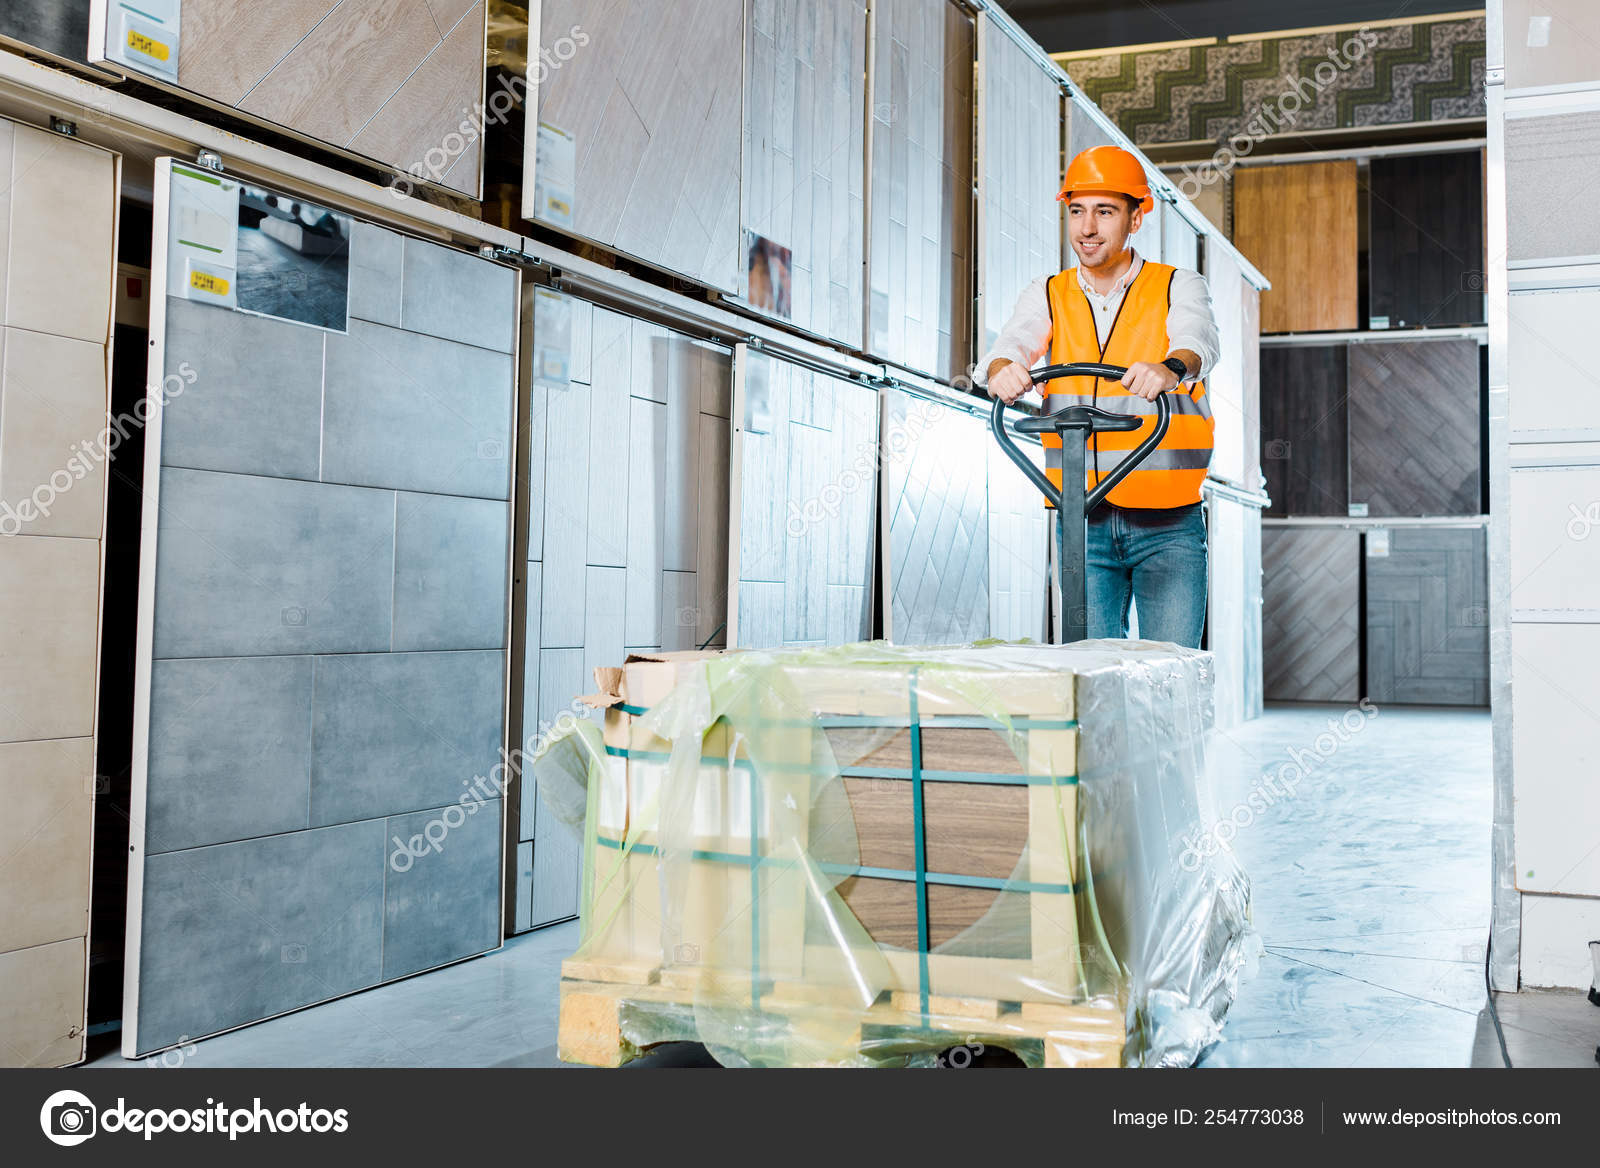 Smiling Warehouse Worker Carrying Pallet Jack Tiles Department